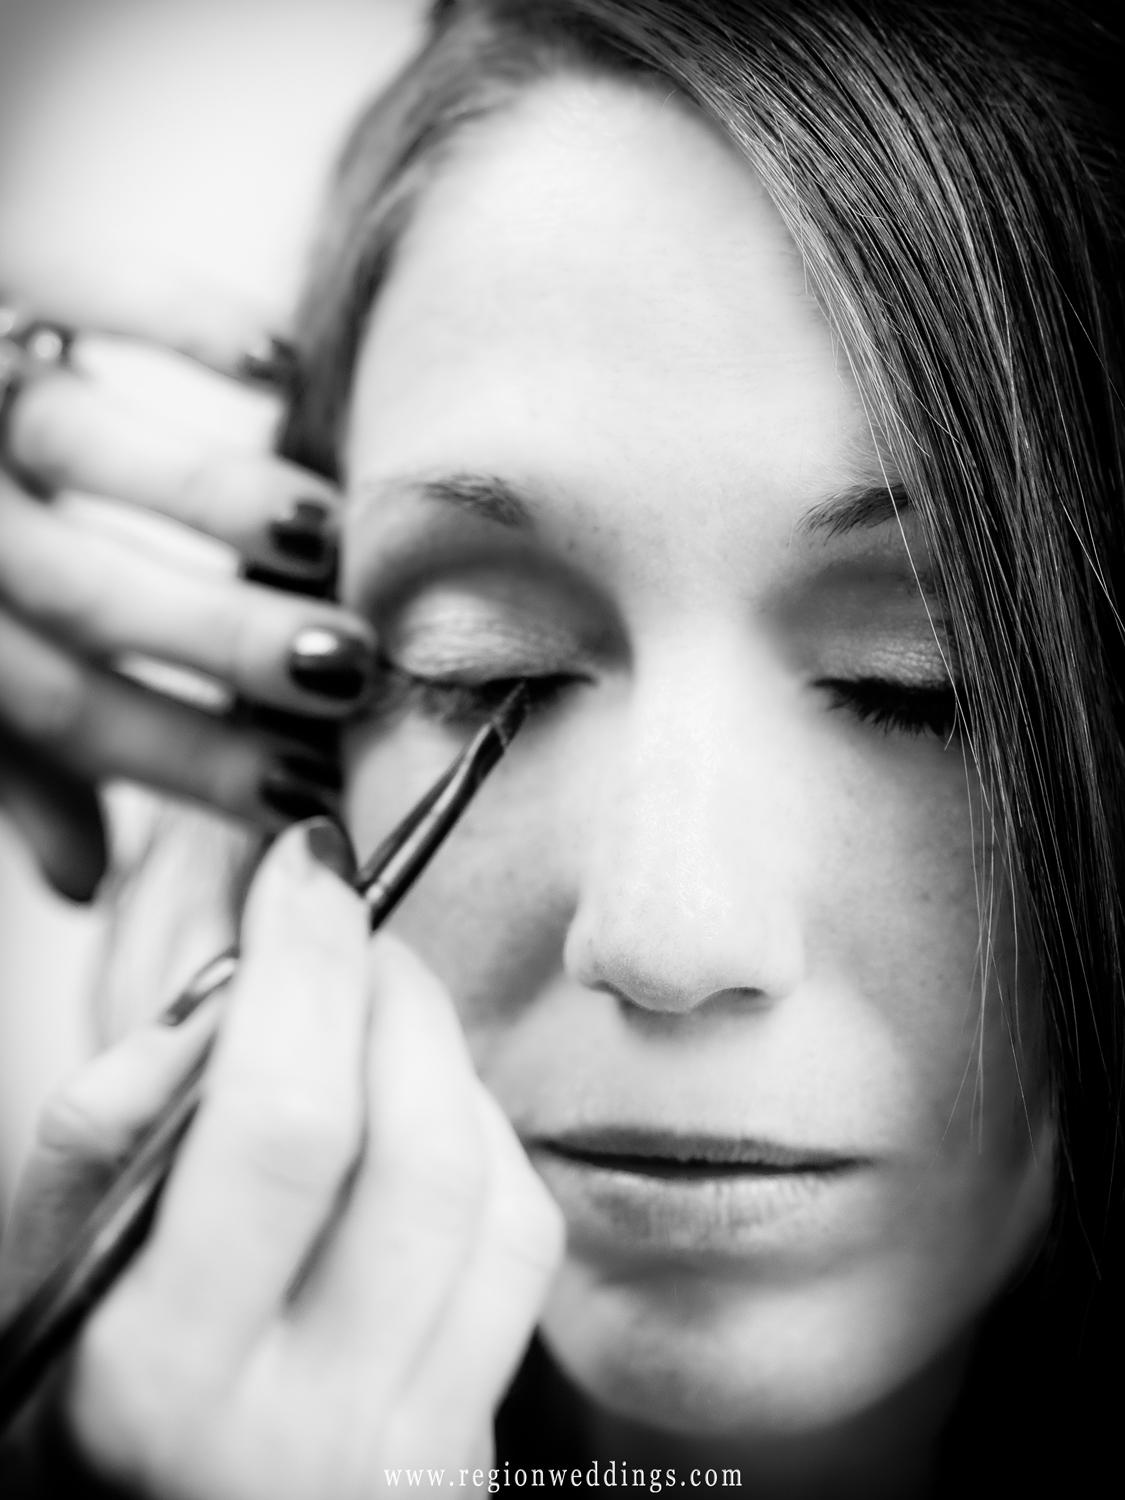 Eye make up gets applied to the bride at a salon in Portage.